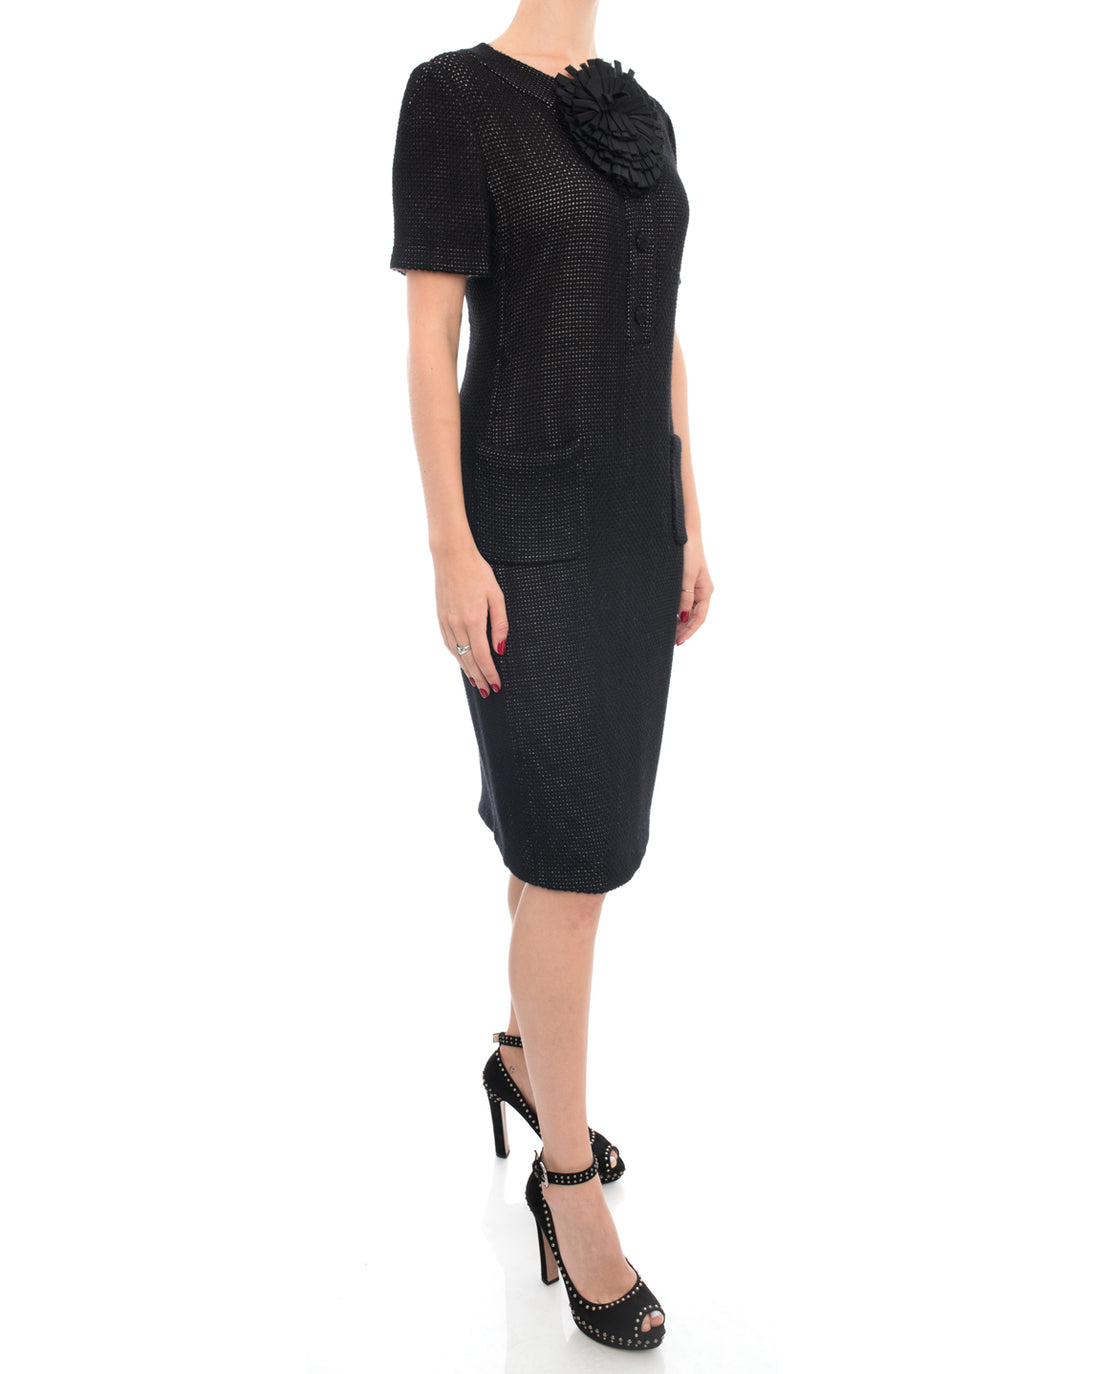 Fendi Black 1960's Style Dress with Flower Accent - 8